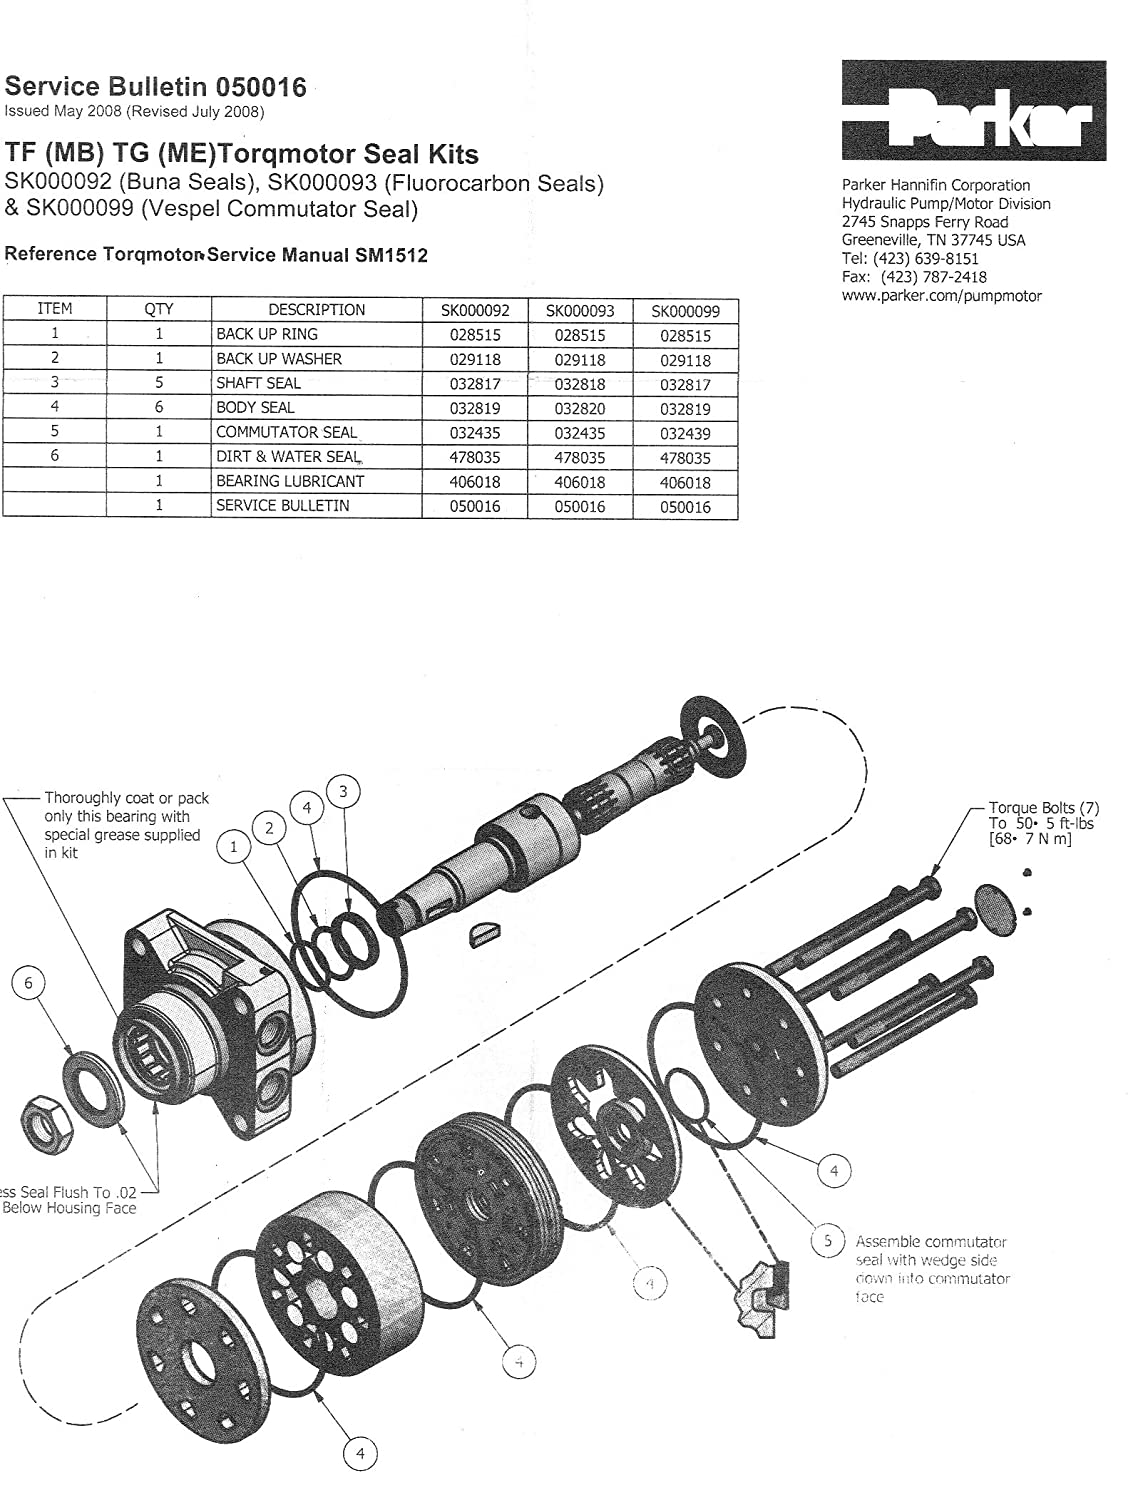 Gm Brake Booster Parts Diagram in addition Orbital Diagram For Carbon Dioxide in addition Showthread additionally Showthread likewise Showthread. on showthread